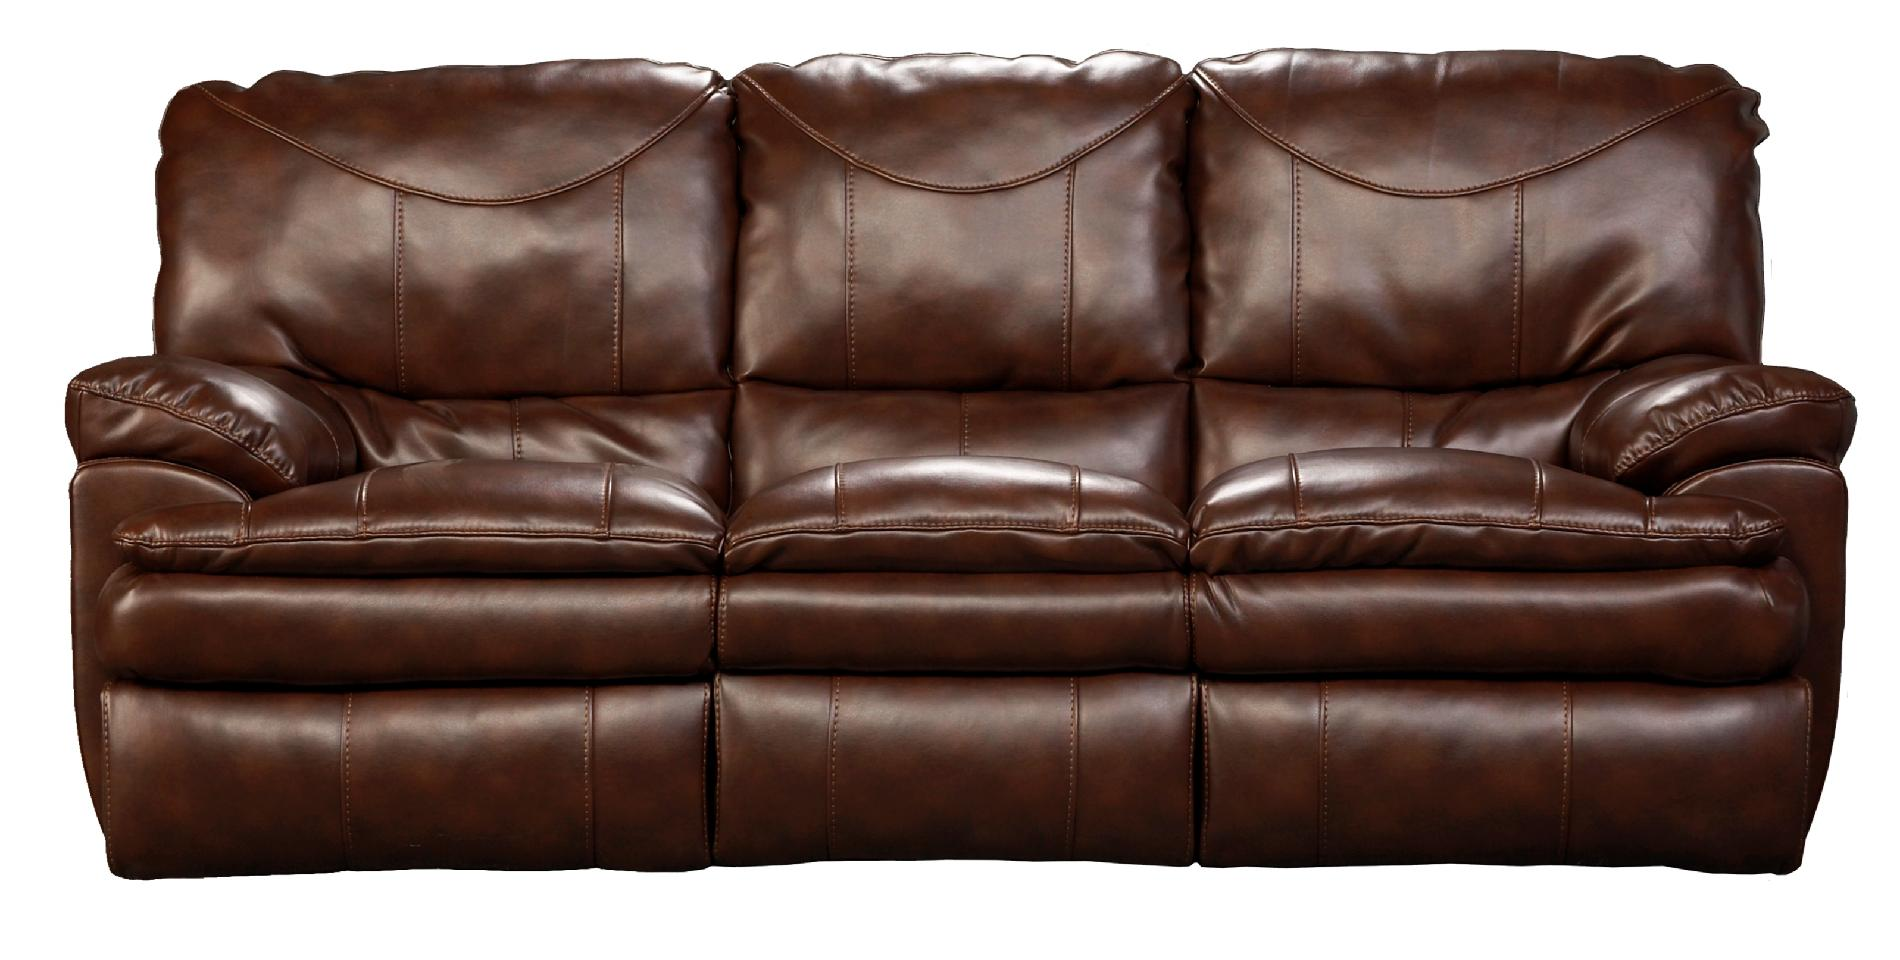 sears clearwater sofa sectional loveseat chair set catnapper brown contemporary reclining